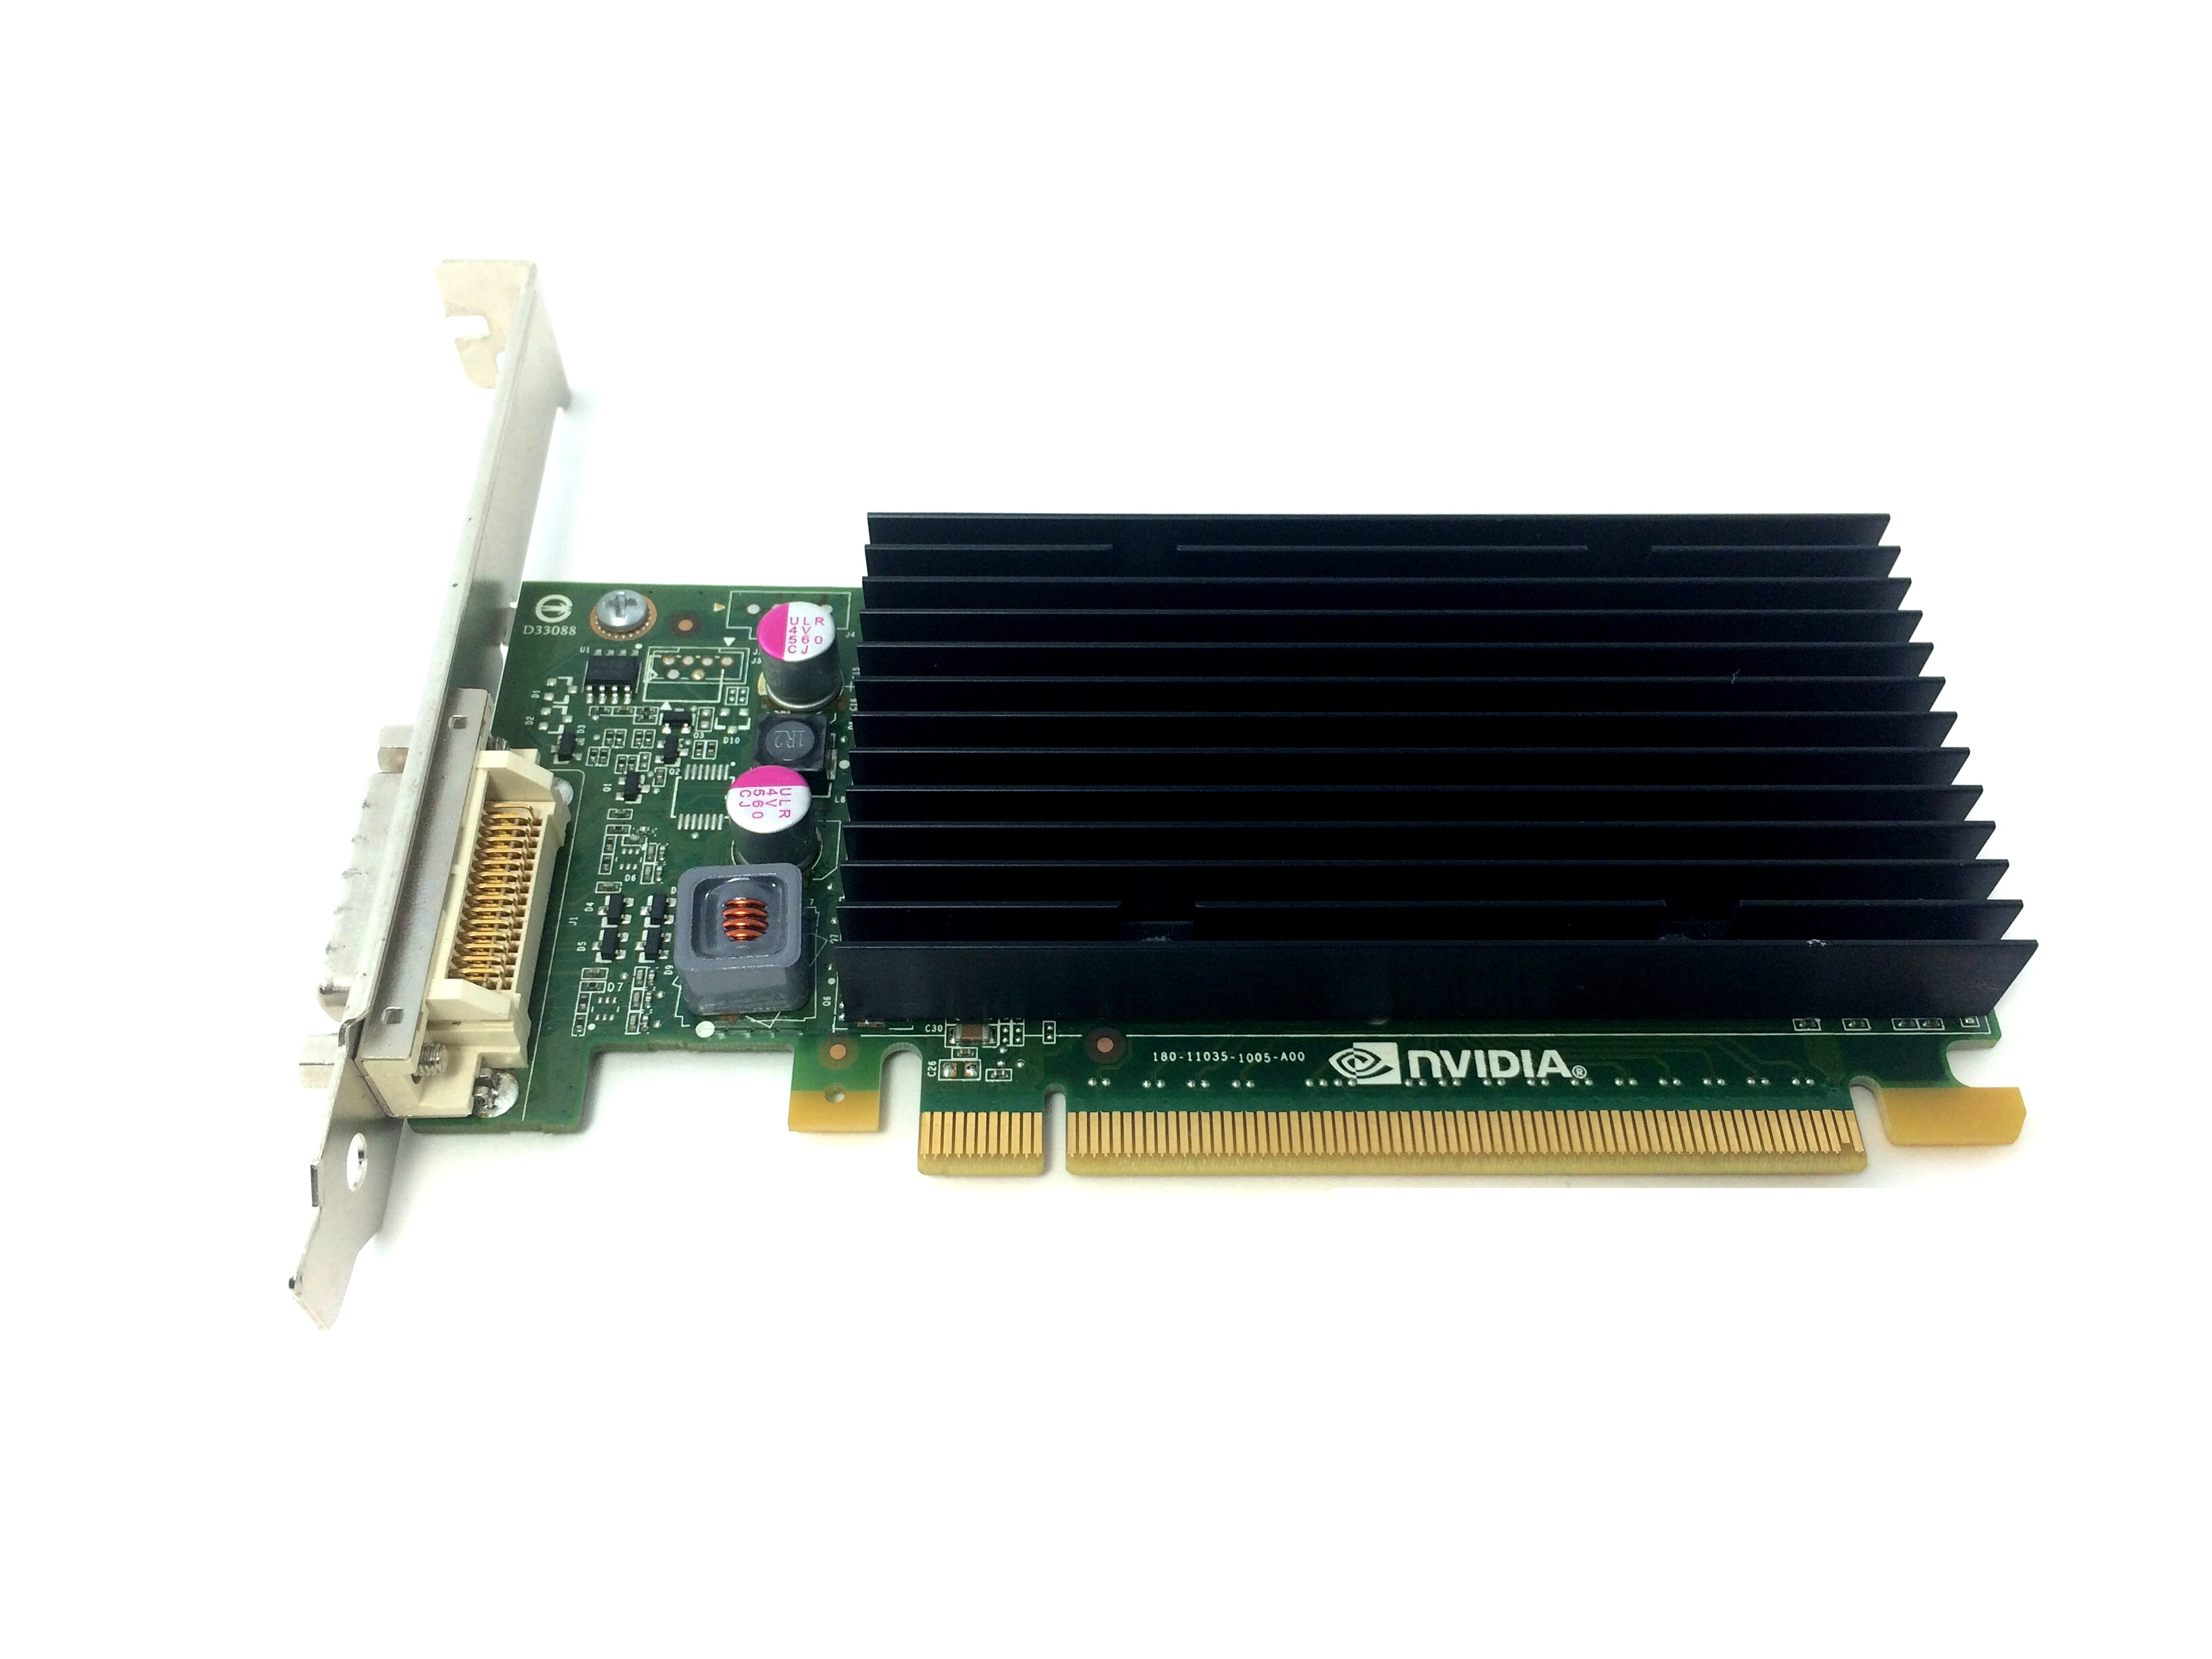 Nvidia Quadro NVS 300 PCI-E 2.0 X16 Graphics Card (632486-001)